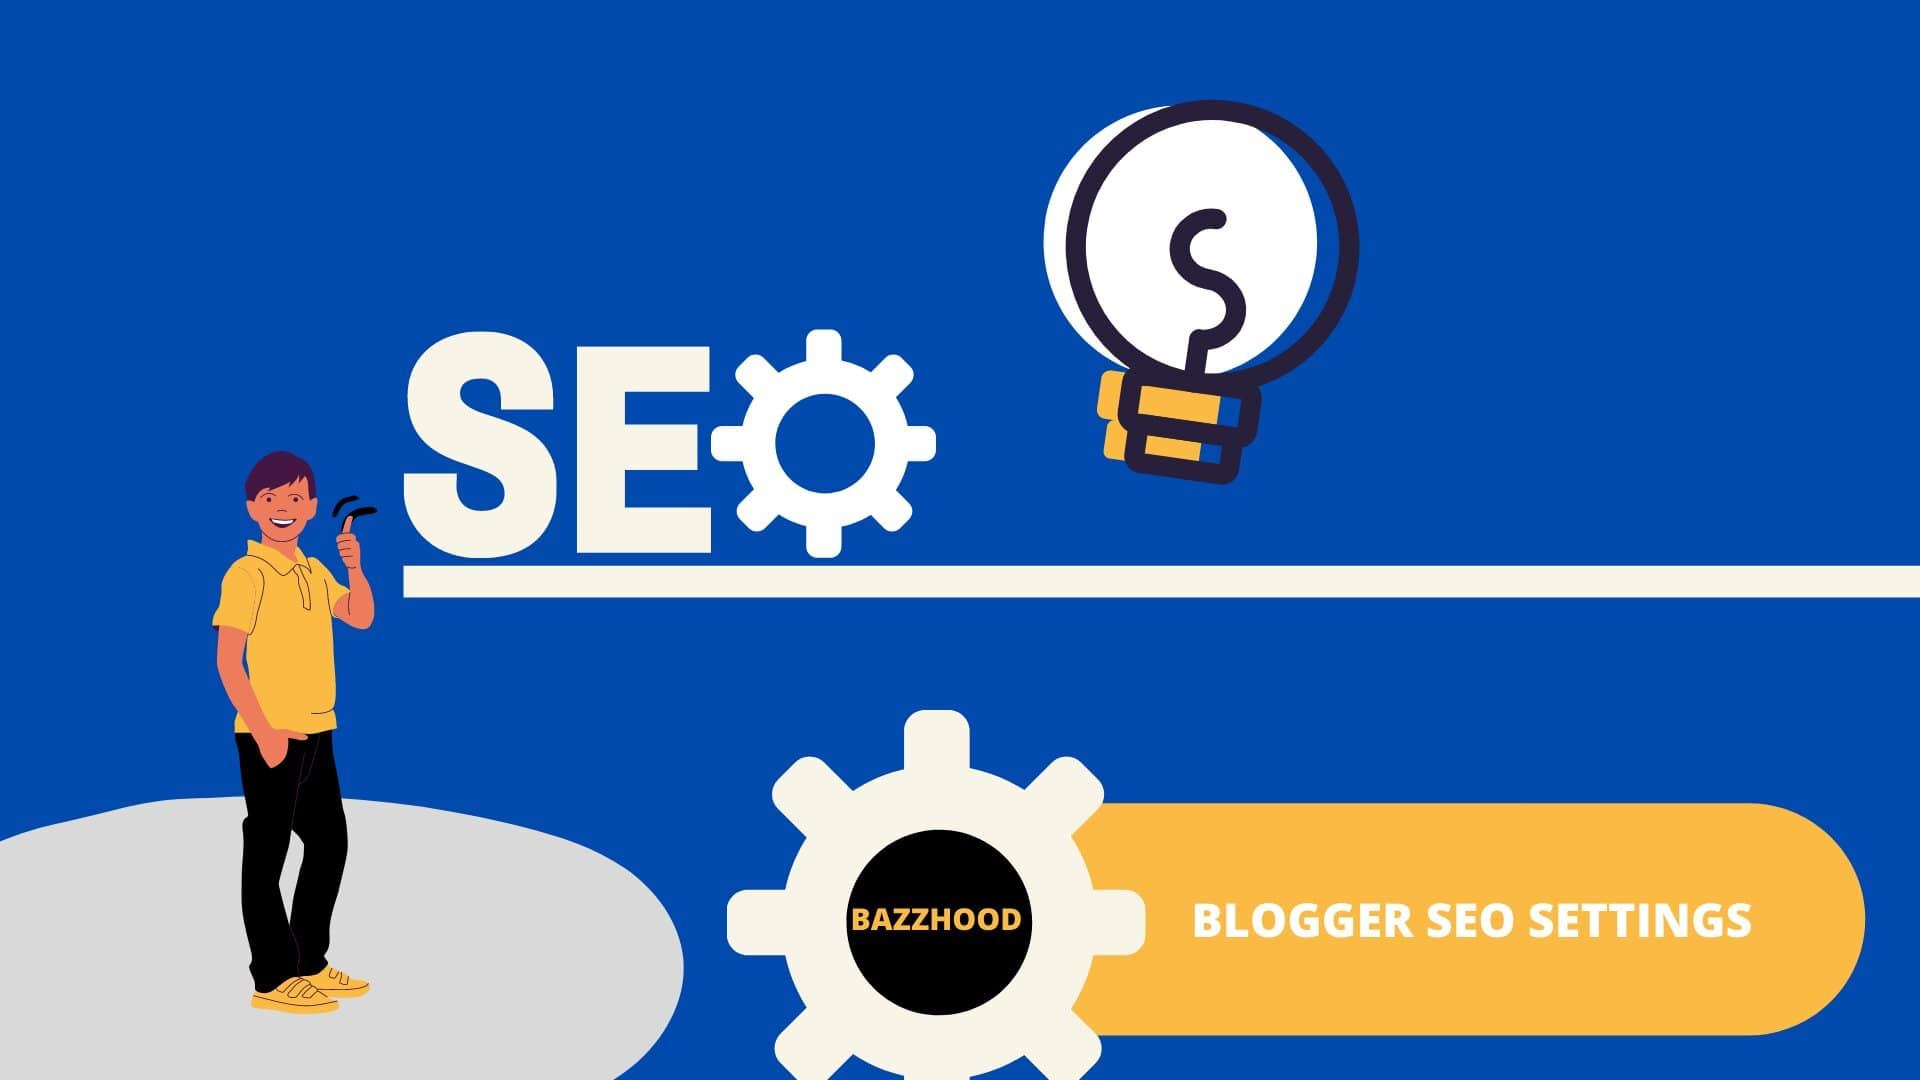 BlogSpot SEO Settings for Beginners Bloggers